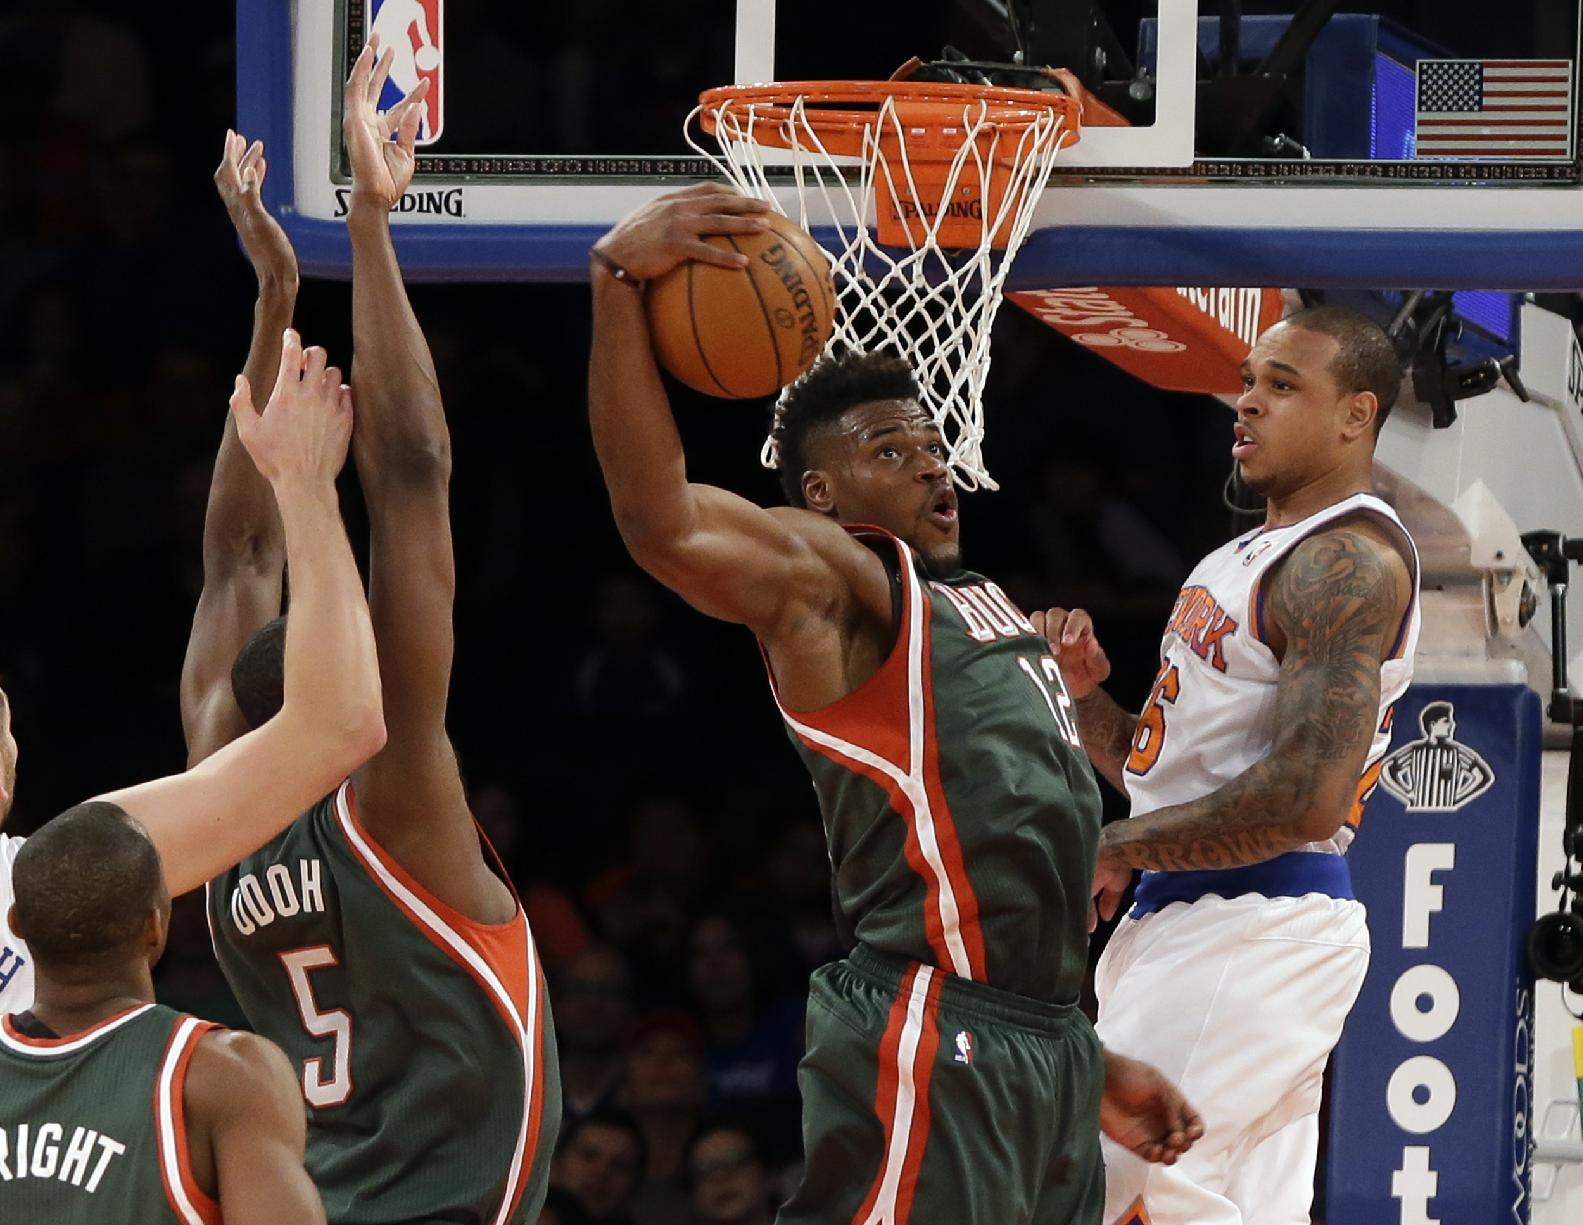 Milwaukee Bucks' Jeff Adrien, center, grabs a rebound of a shot by New York Knicks' Shannon Brown, right, in the fourth quarter of an NBA basketball game at New York's Madison Square Garden,  Saturday, March 15, 2014. The Knicks won 115-94